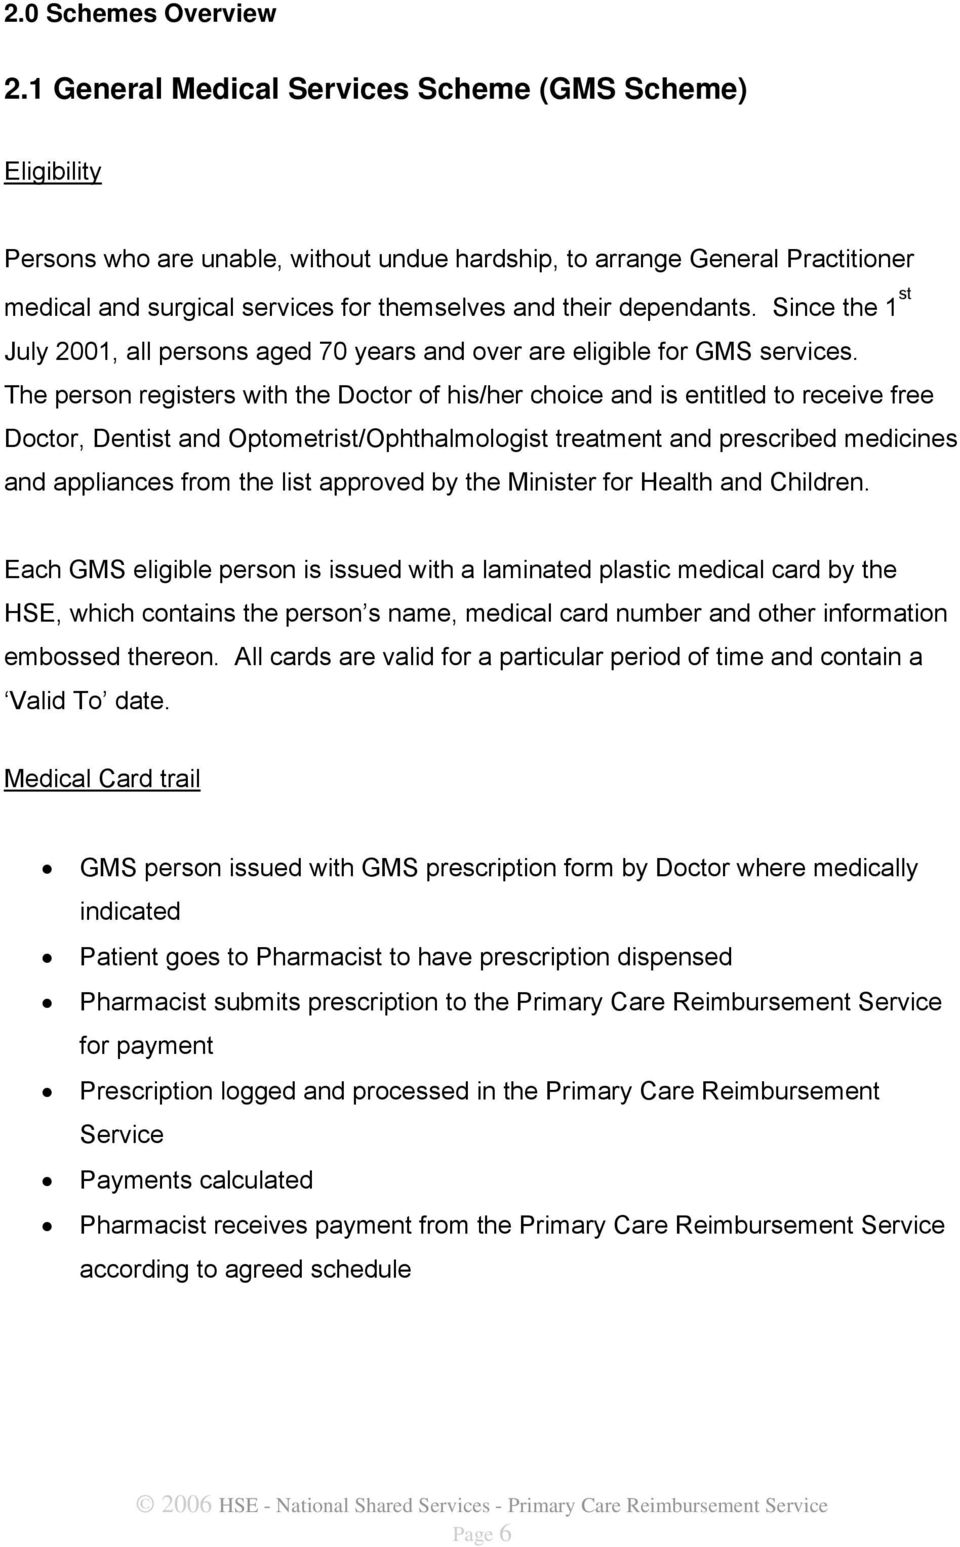 dependants. Since the 1 st July 2001, all persons aged 70 years and over are eligible for GMS services.